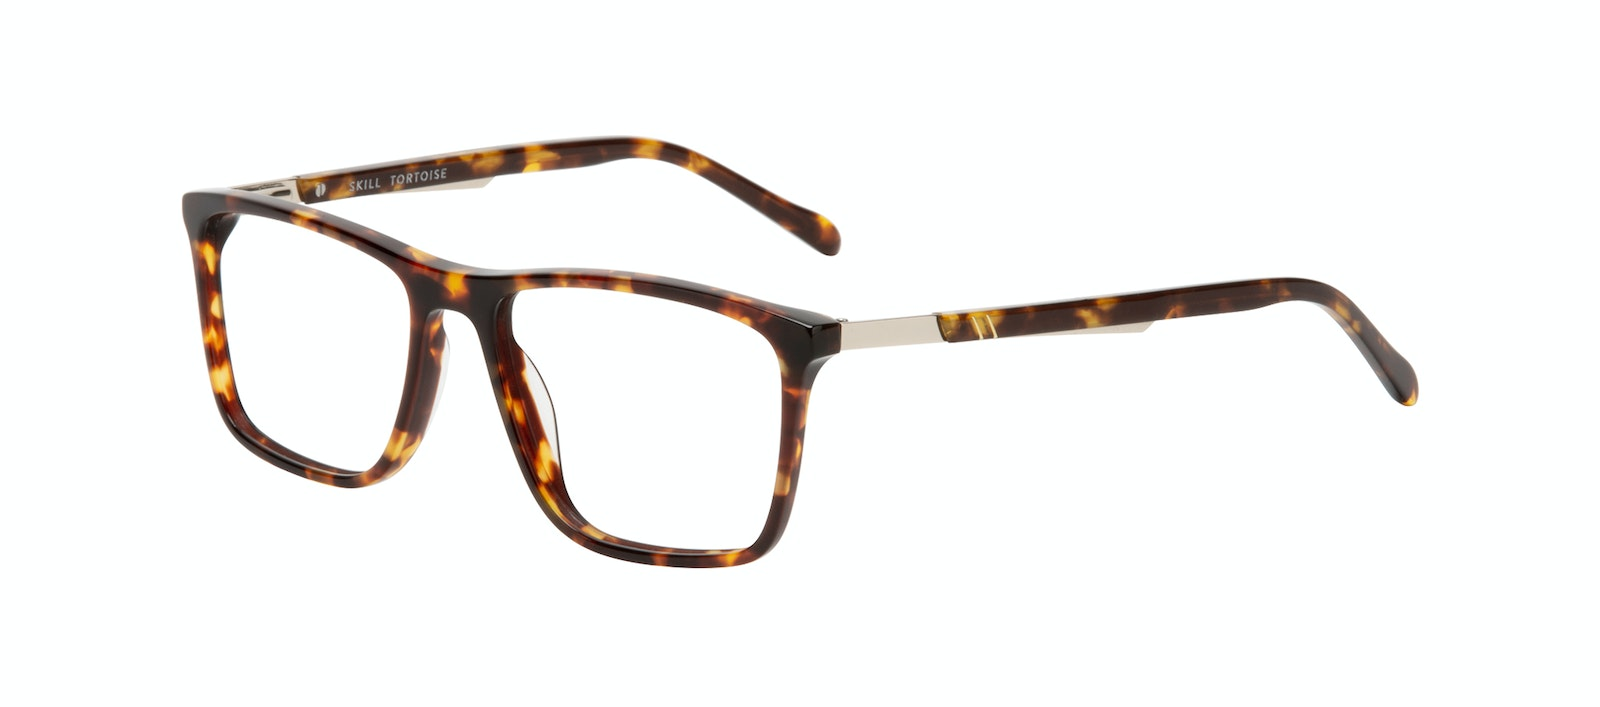 Affordable Fashion Glasses Rectangle Eyeglasses Men Skill Tortoise Tilt